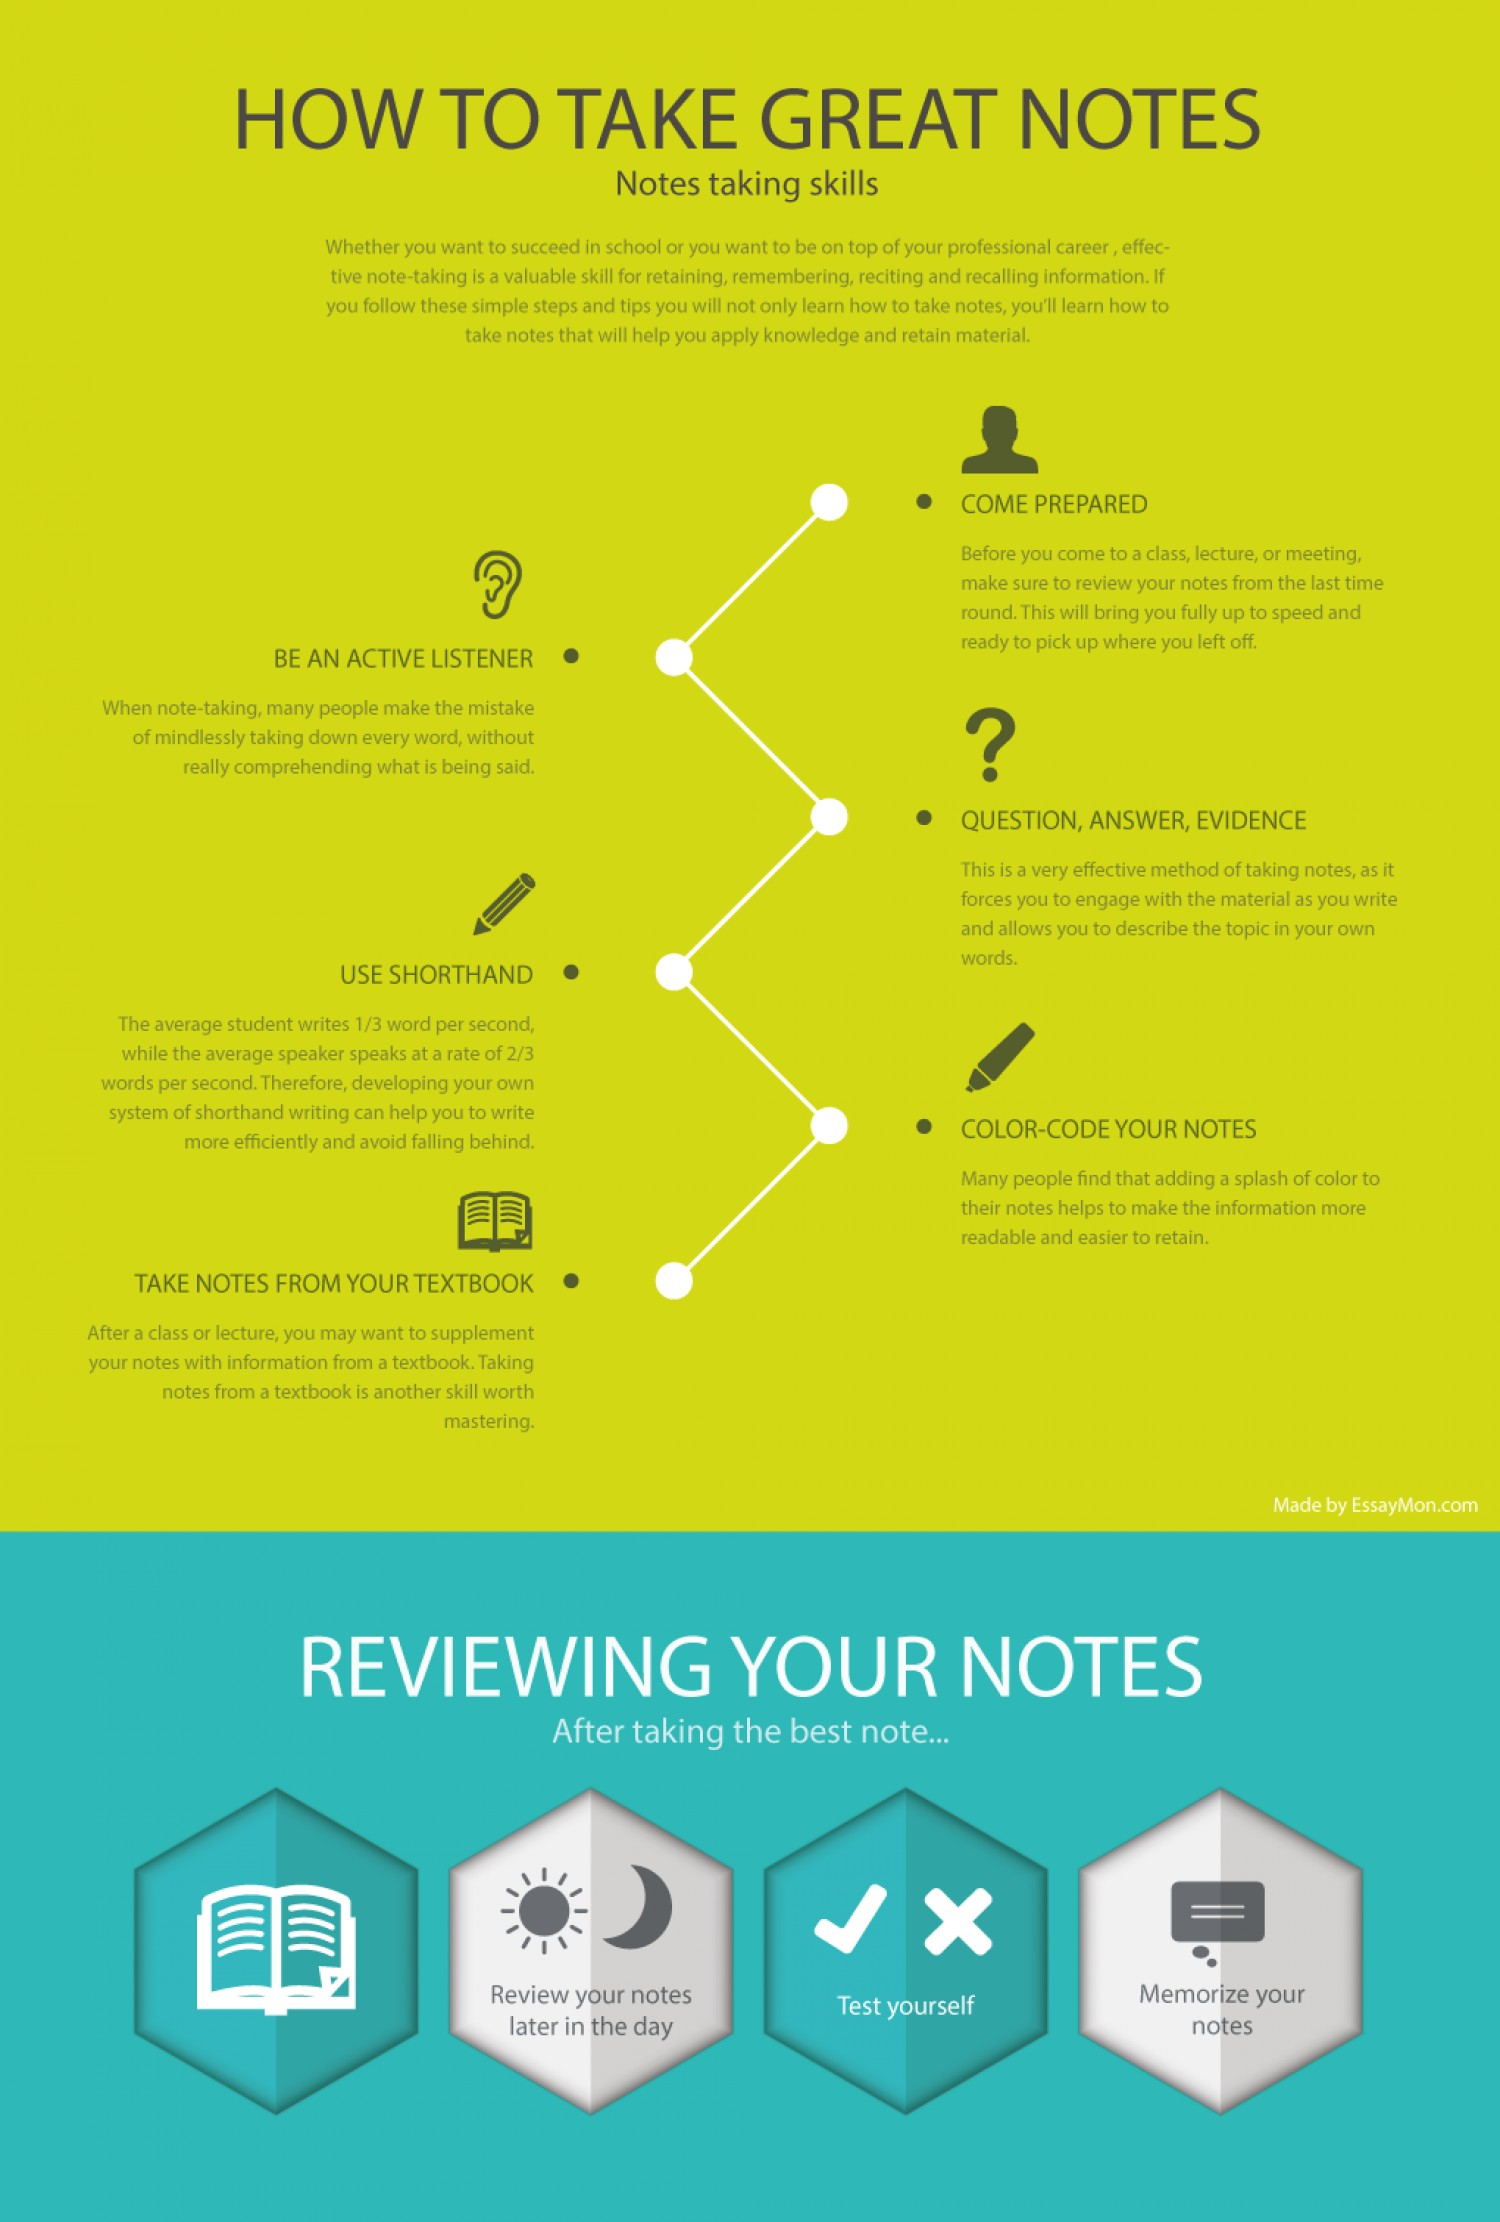 how-to-take-great-notes_54a2bdb9aa732_w1500.png